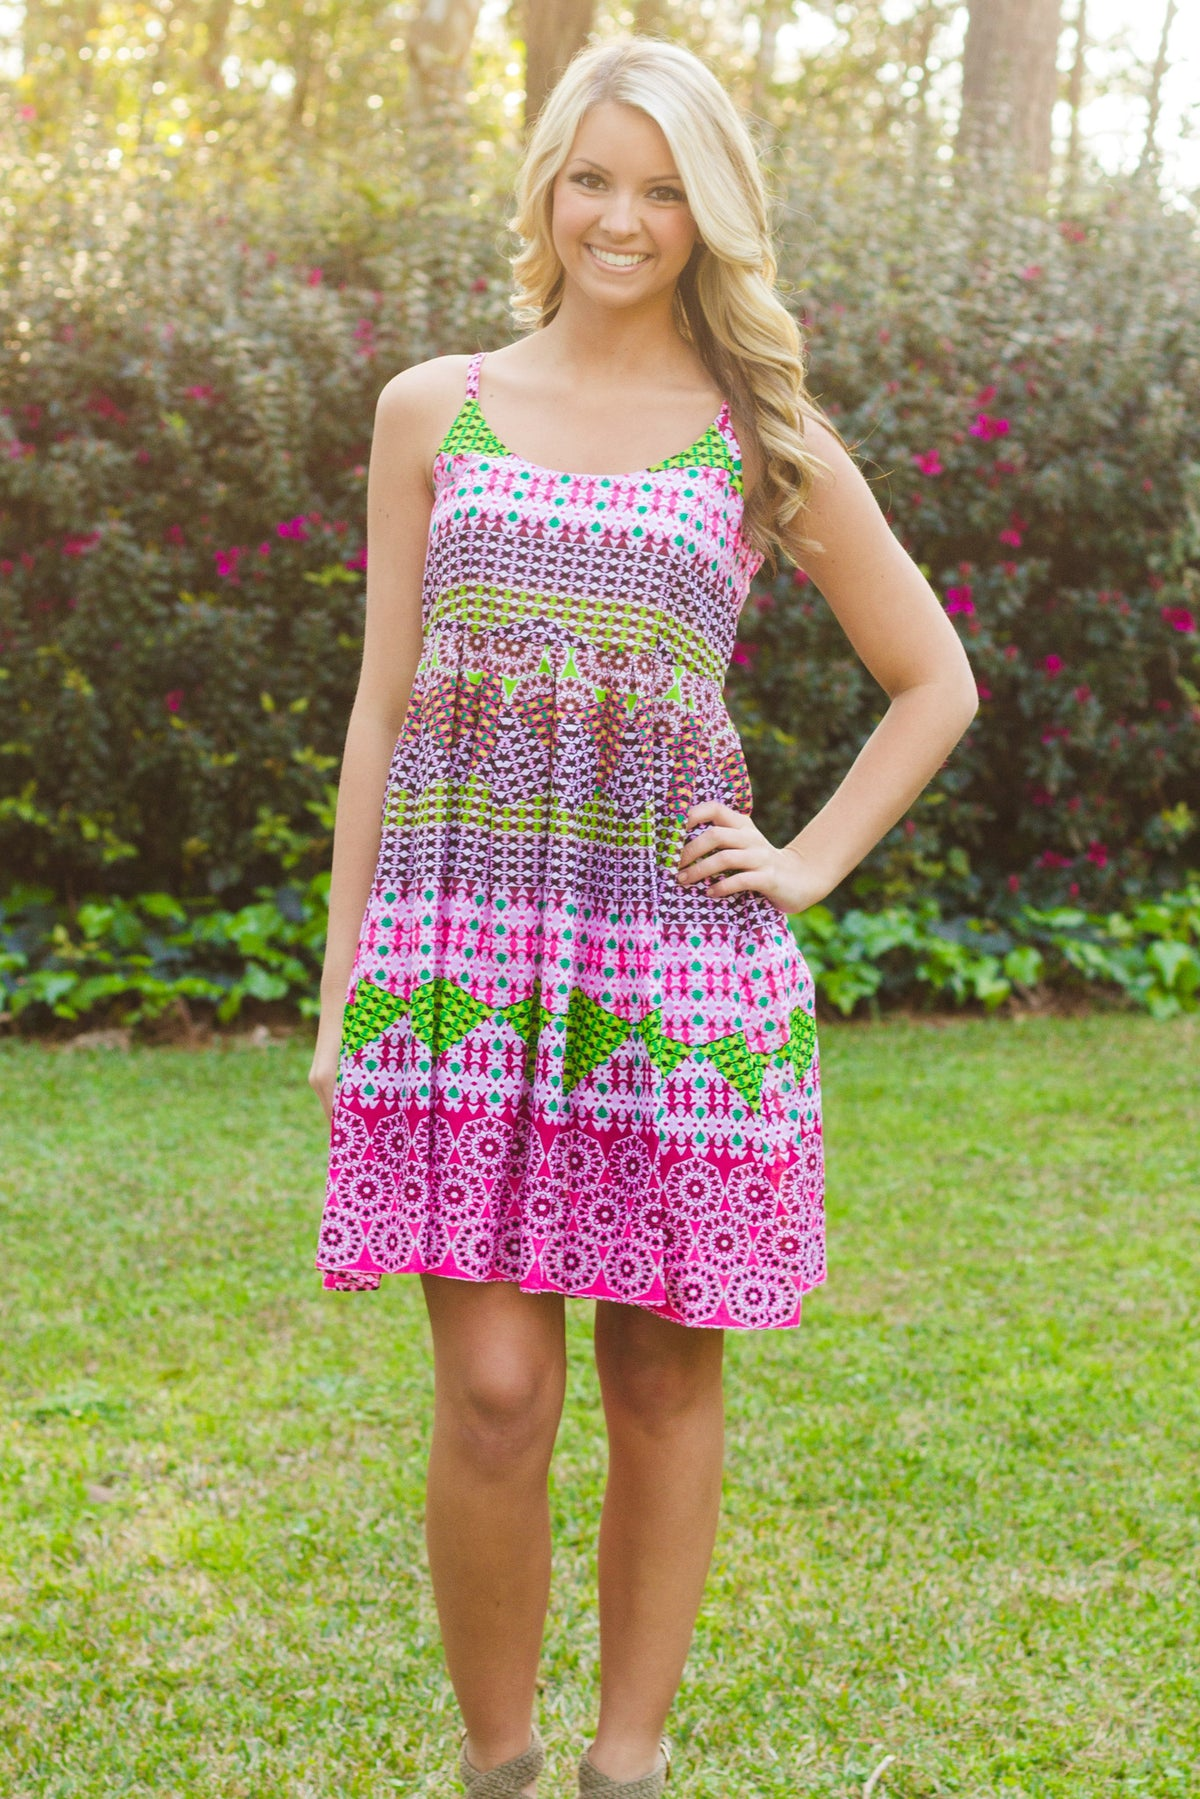 Uncle Frank: Shanna Dress, Pink Multi